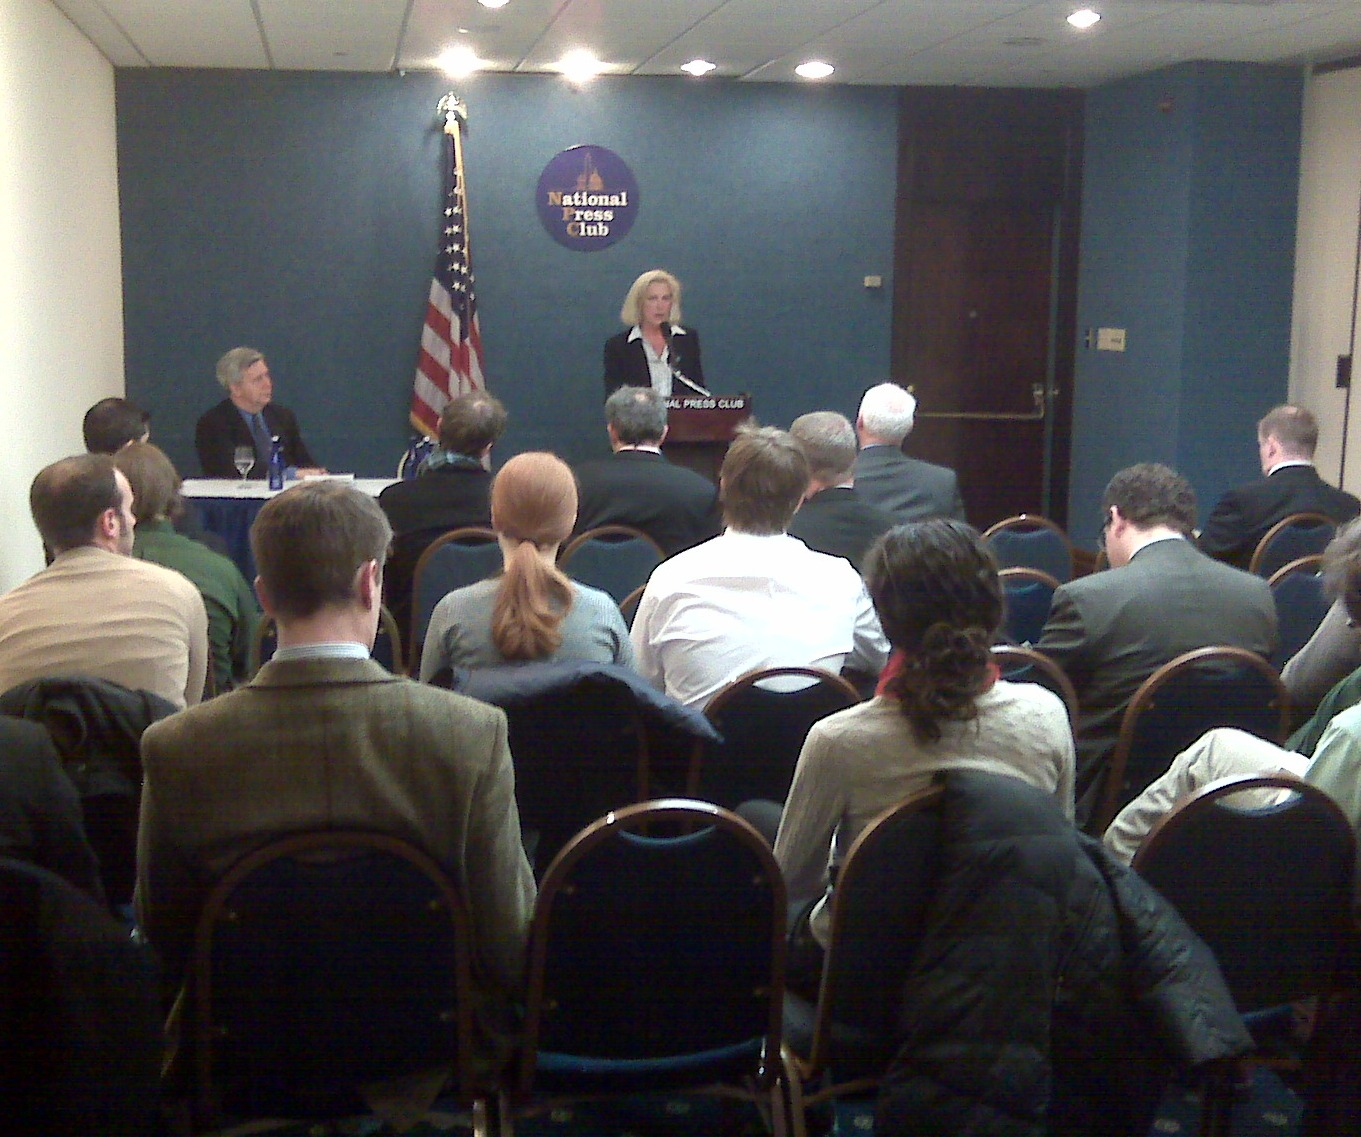 Melissa Hathaway, principal author of the Cyber Space Policy Review, accepts her McCurdy Award in 2010 during a press conference at the National Press Club.